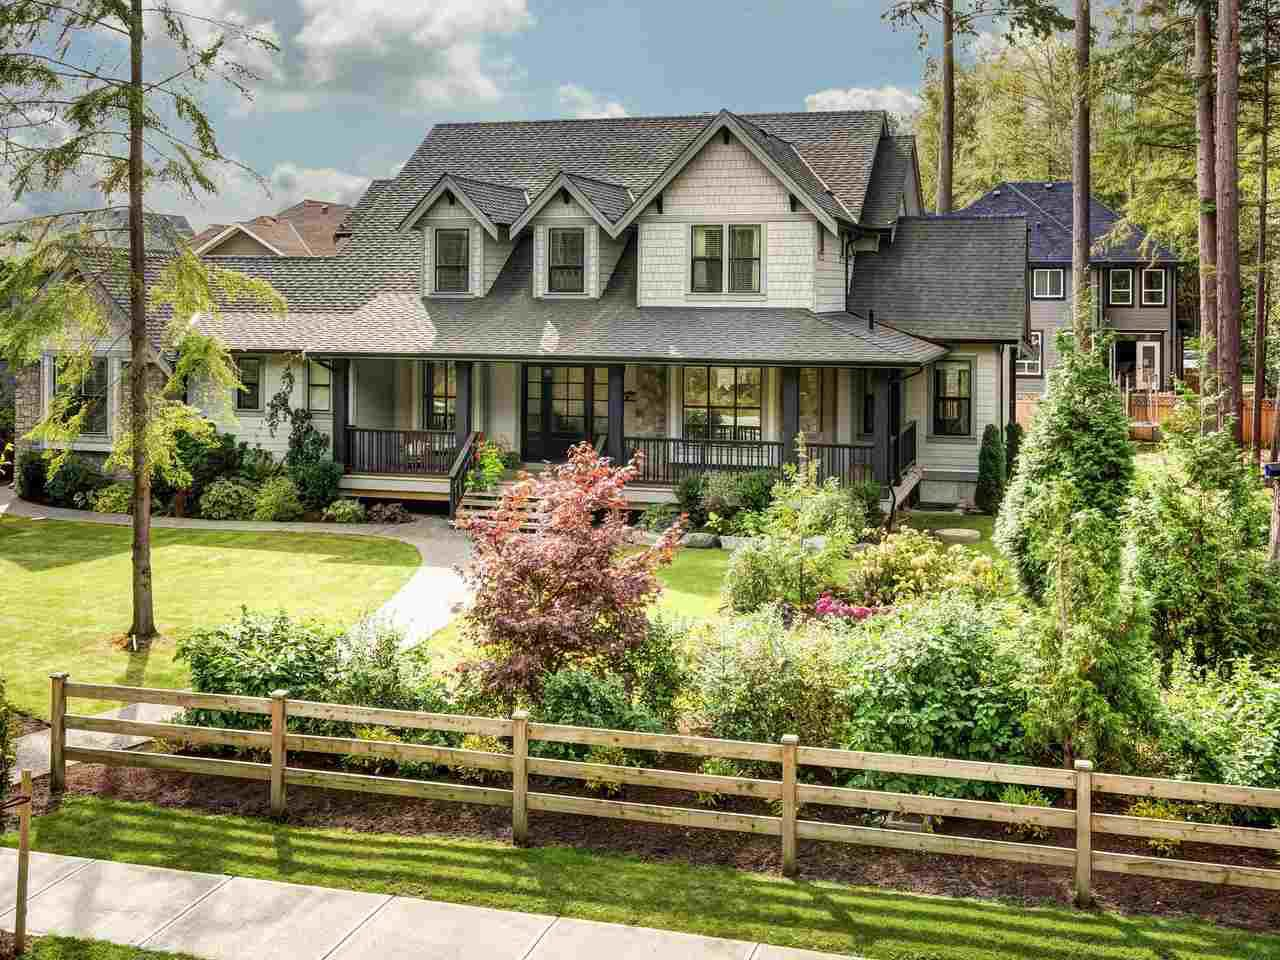 Main Photo: 17160 4 AVENUE in Surrey: Pacific Douglas House for sale (South Surrey White Rock)  : MLS®# R2002289